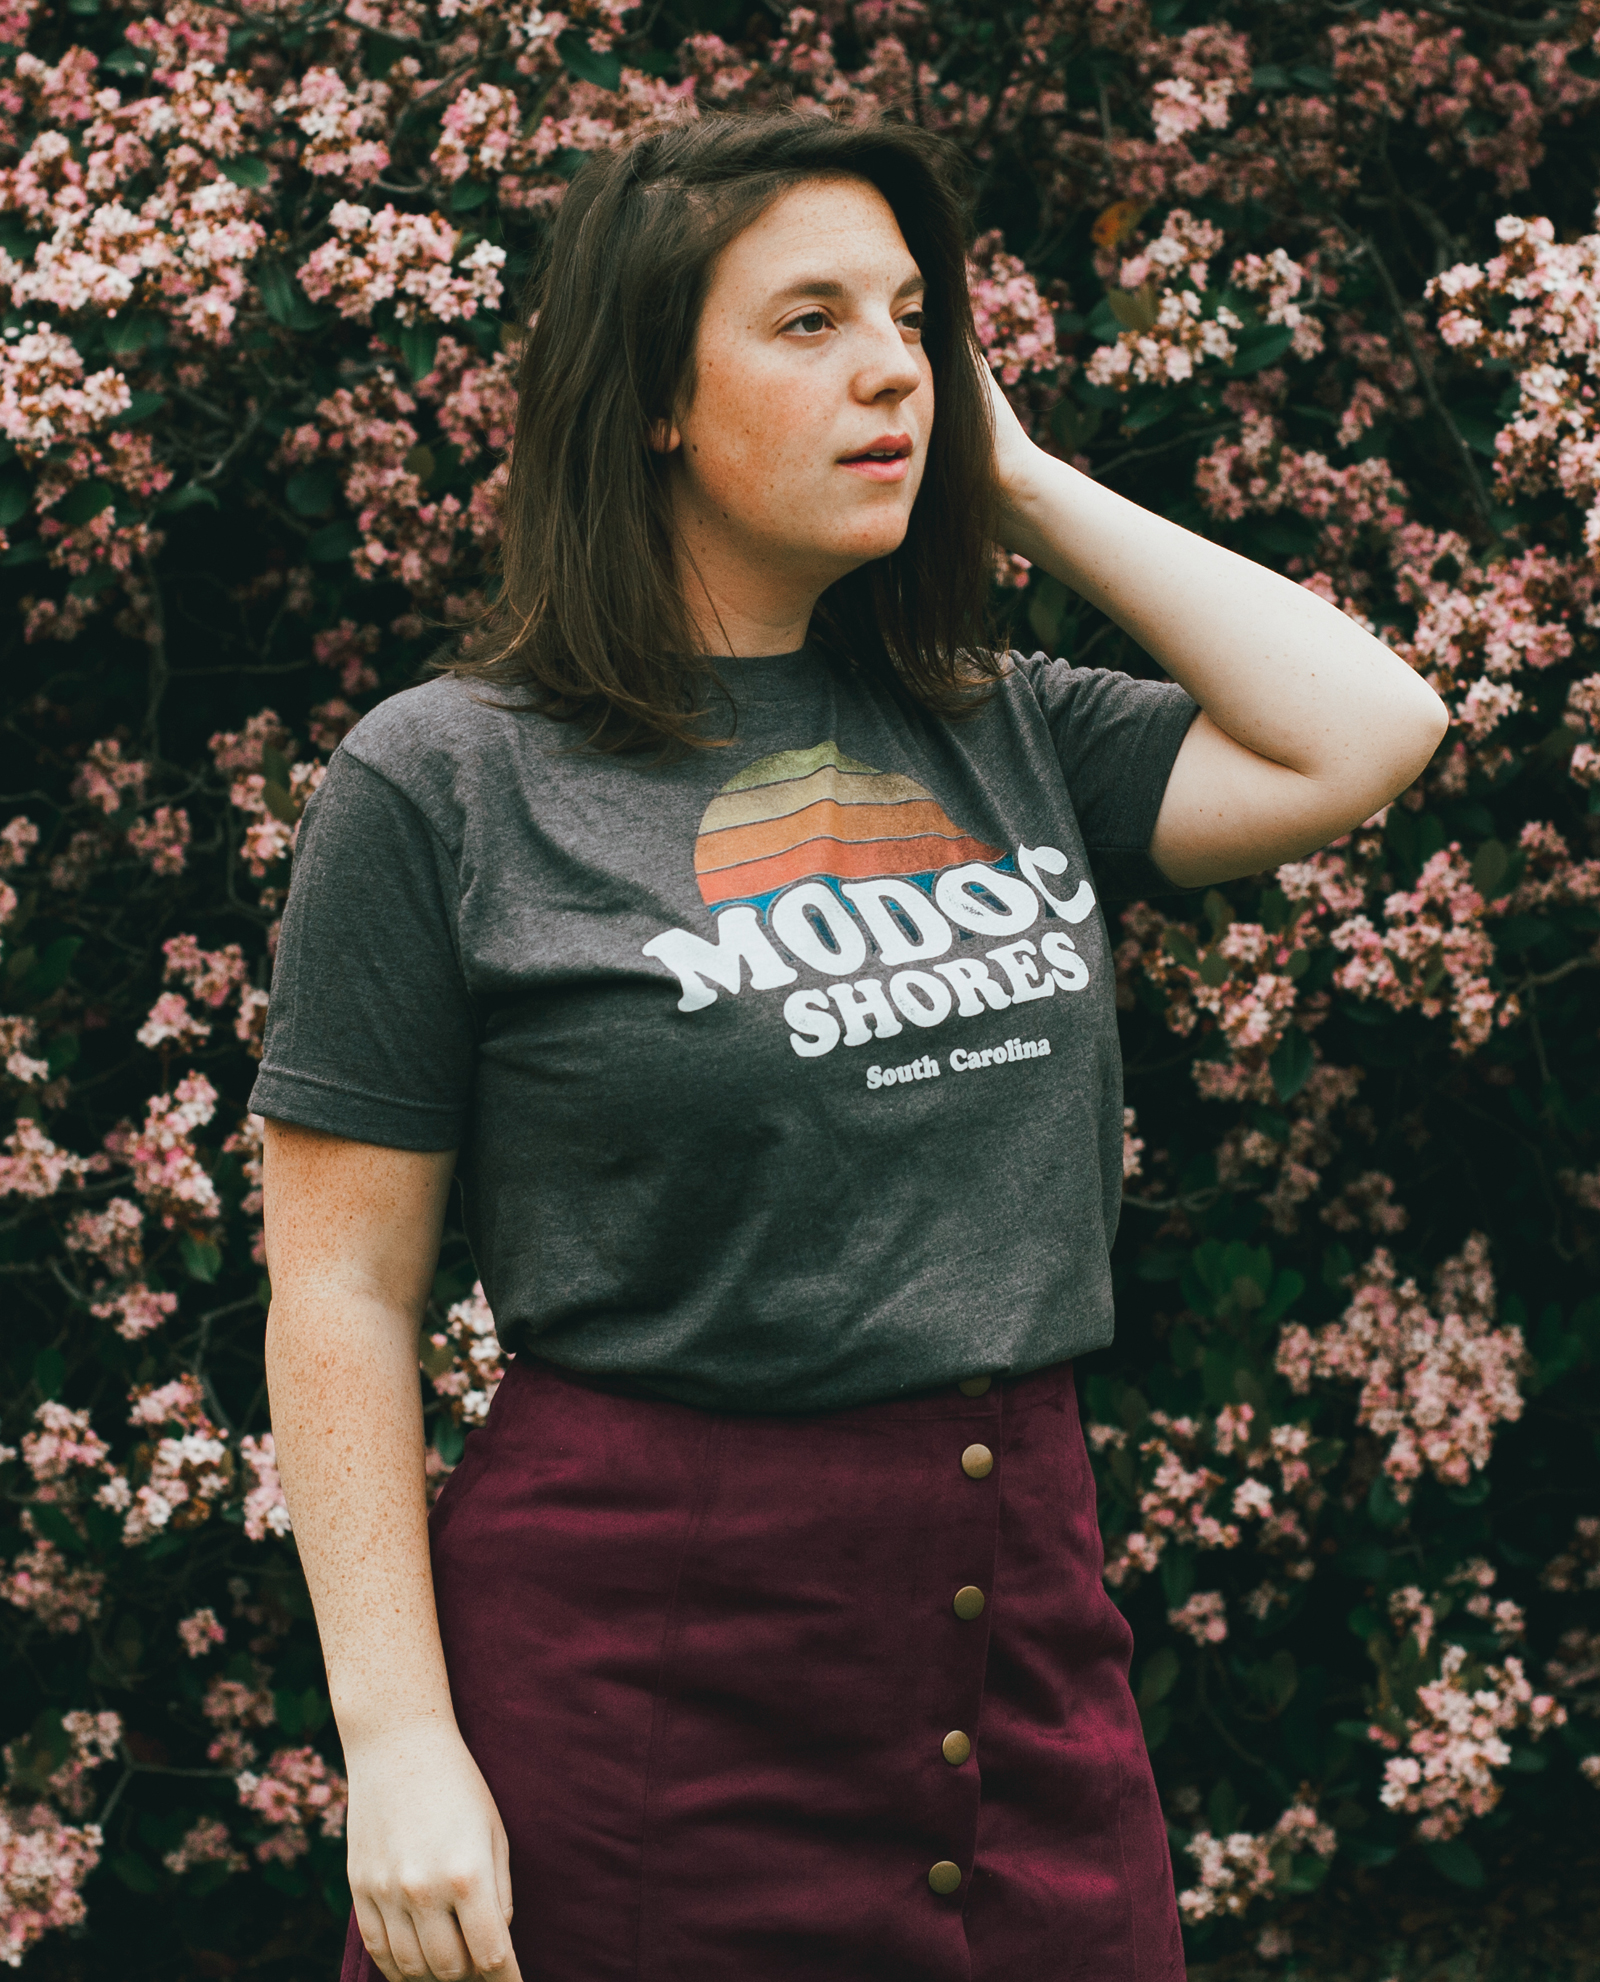 Woman in front of flowers wearing Modoc Shores shirt